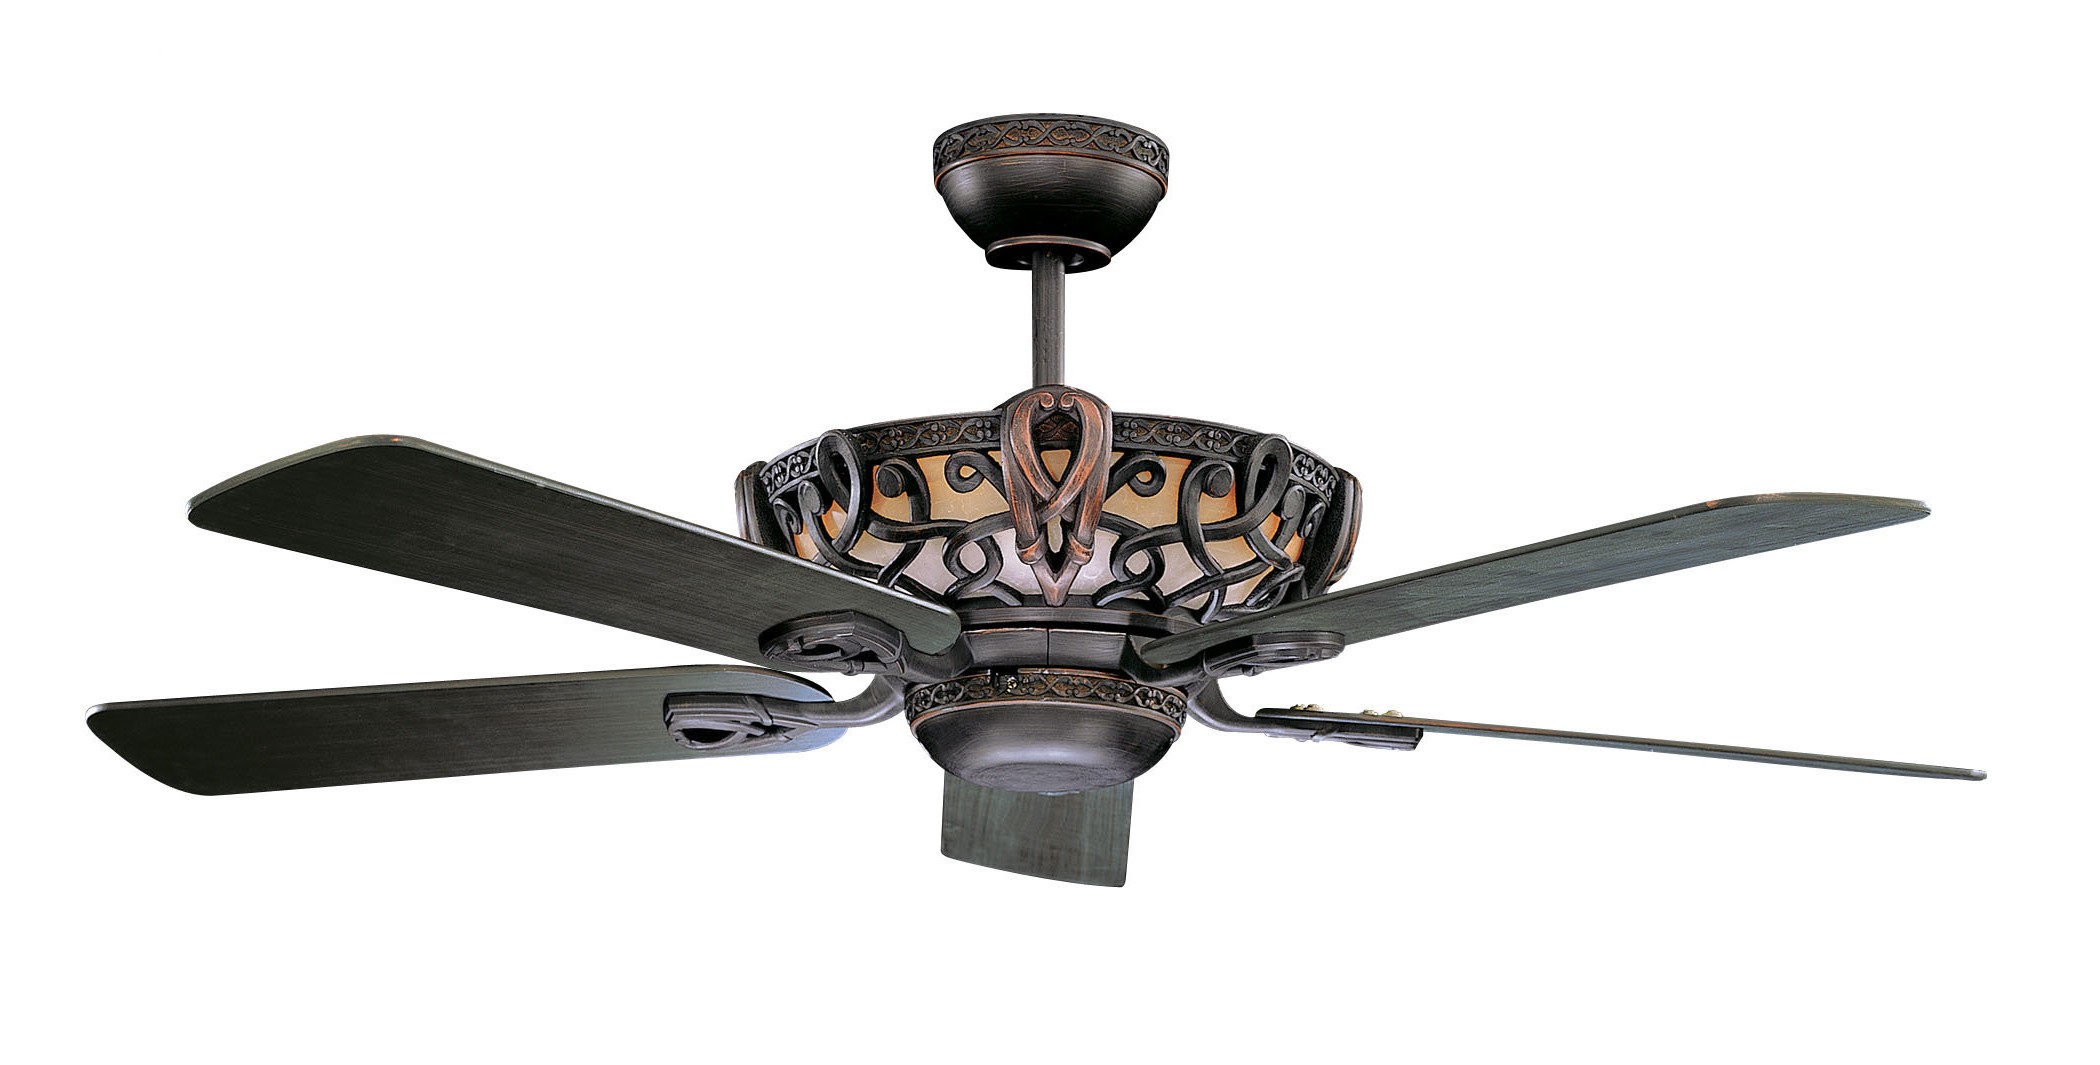 2019 Fredericksen 5 Blade Ceiling Fans Pertaining To Black Wood Indoor Ceiling Fans You'll Love In 2019 (Gallery 16 of 20)